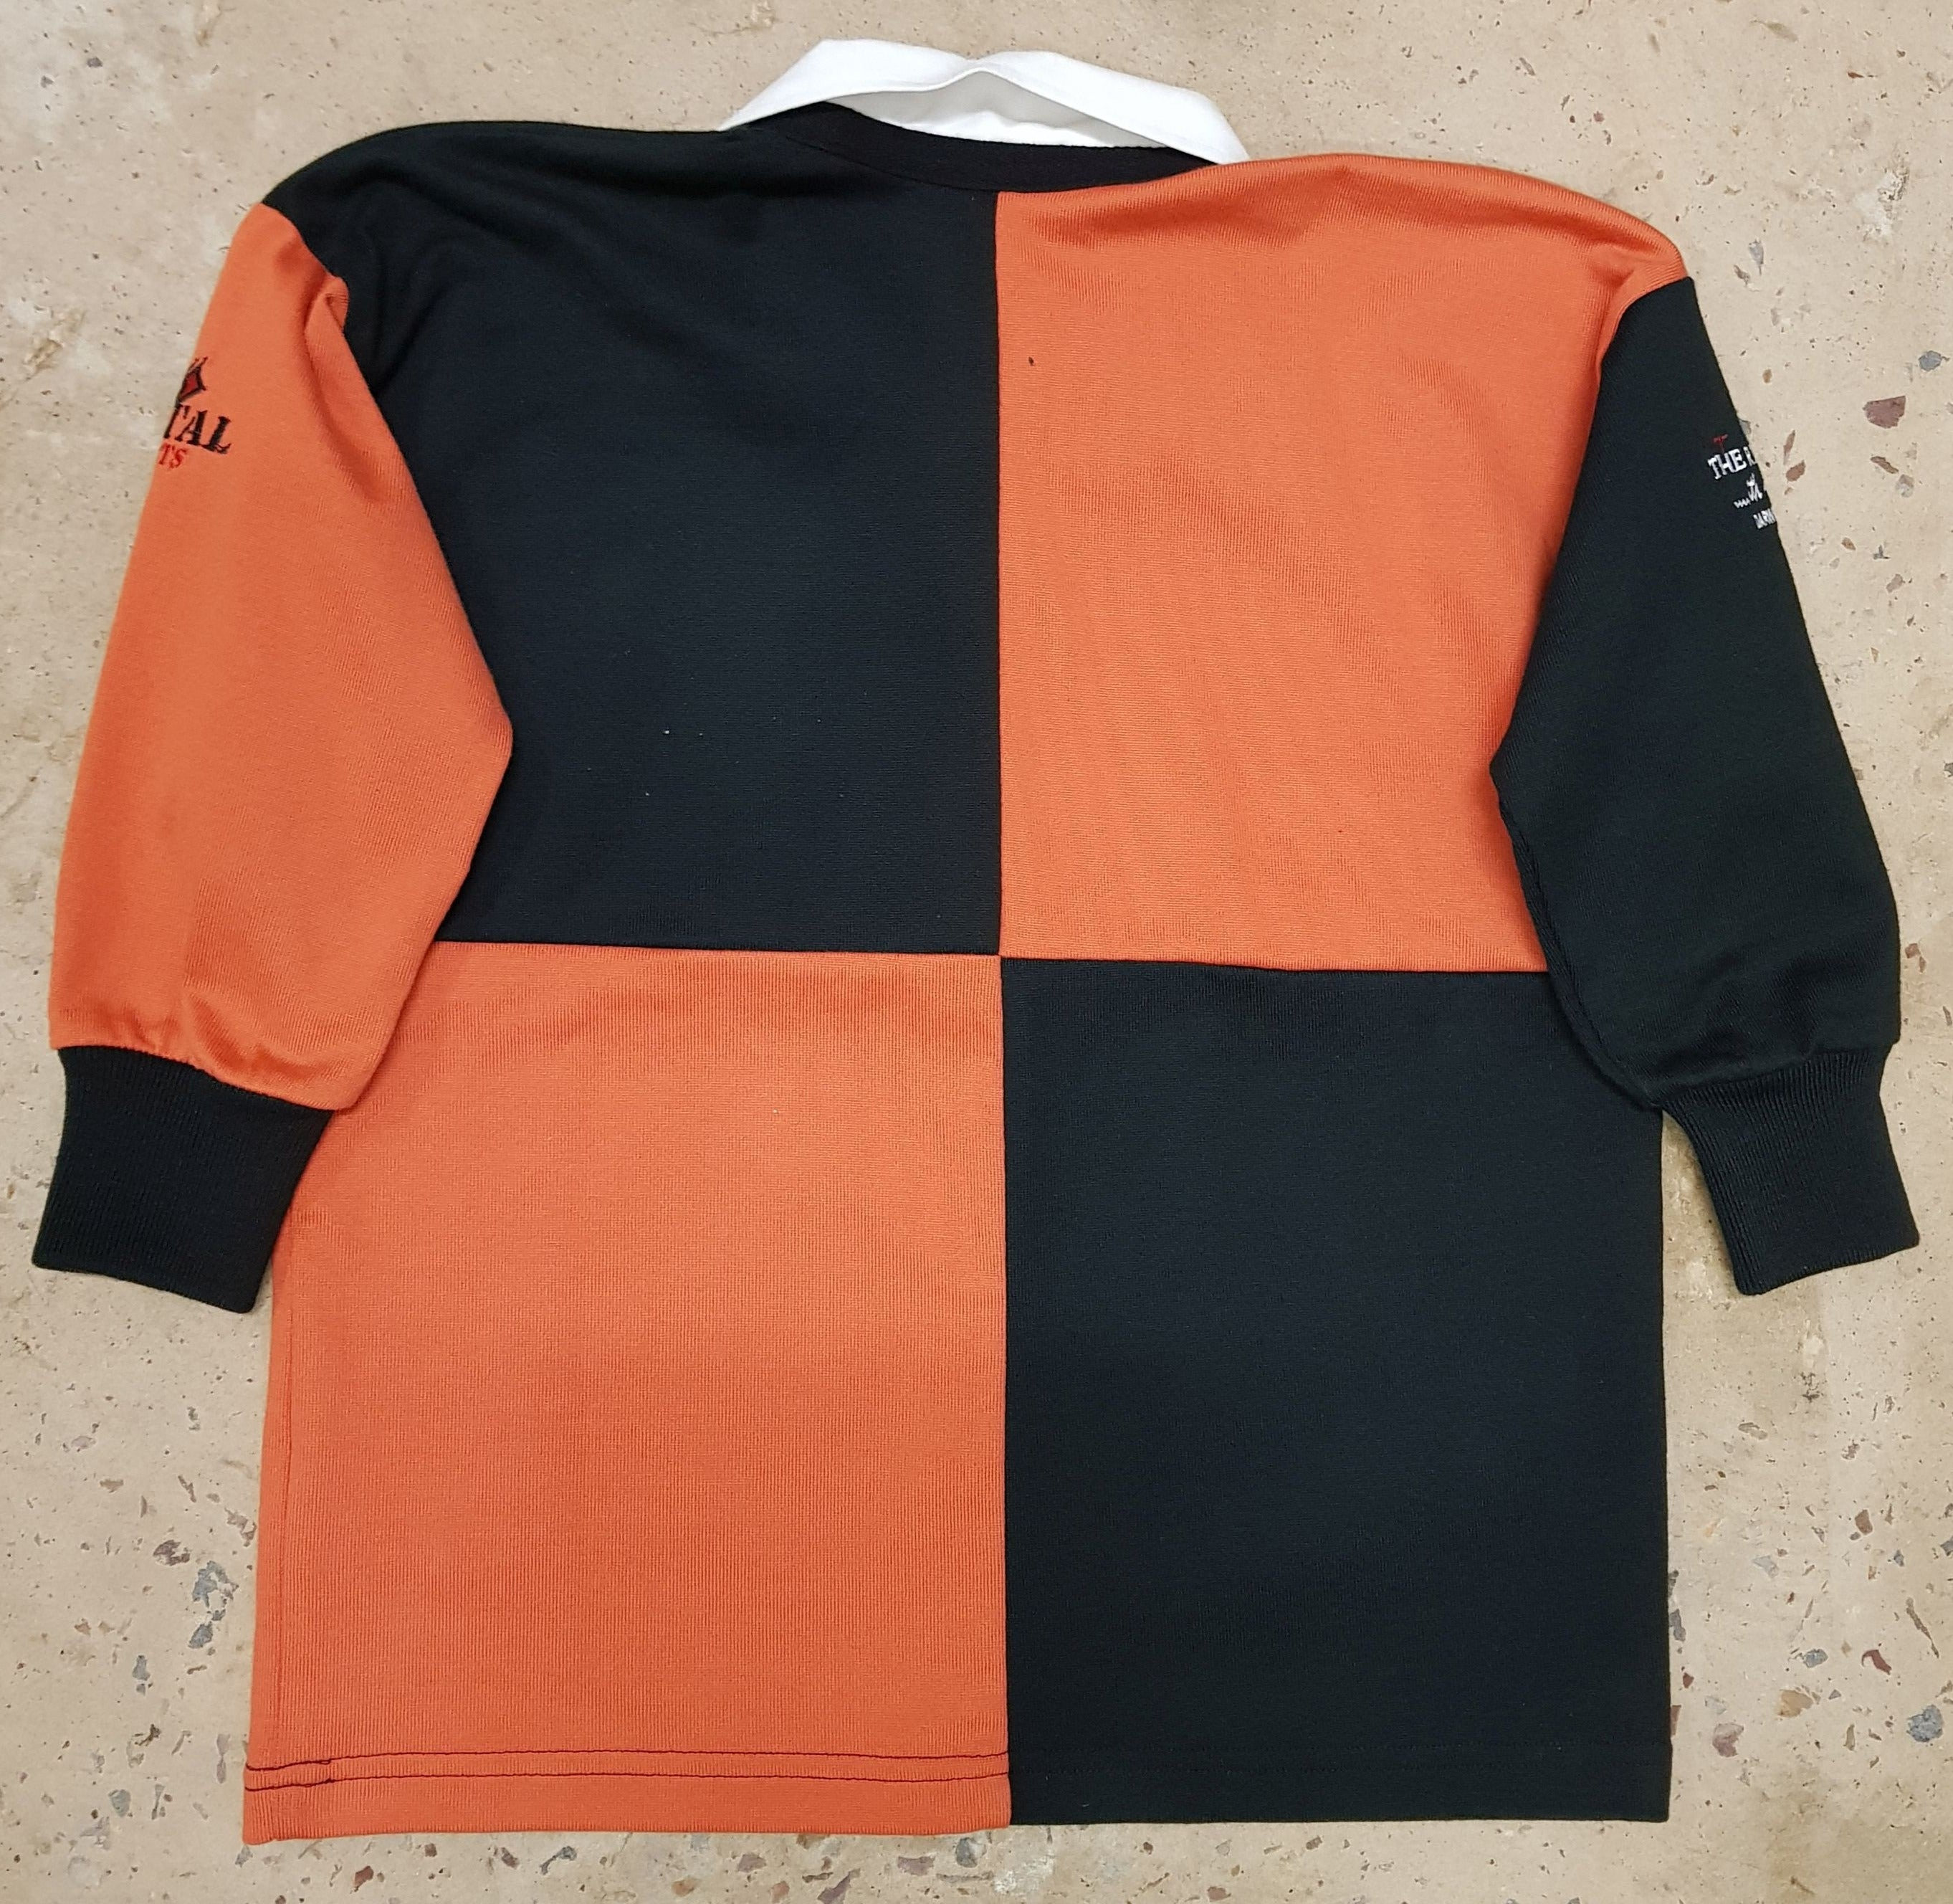 Territory Rugby Kids Harlequin Jersey